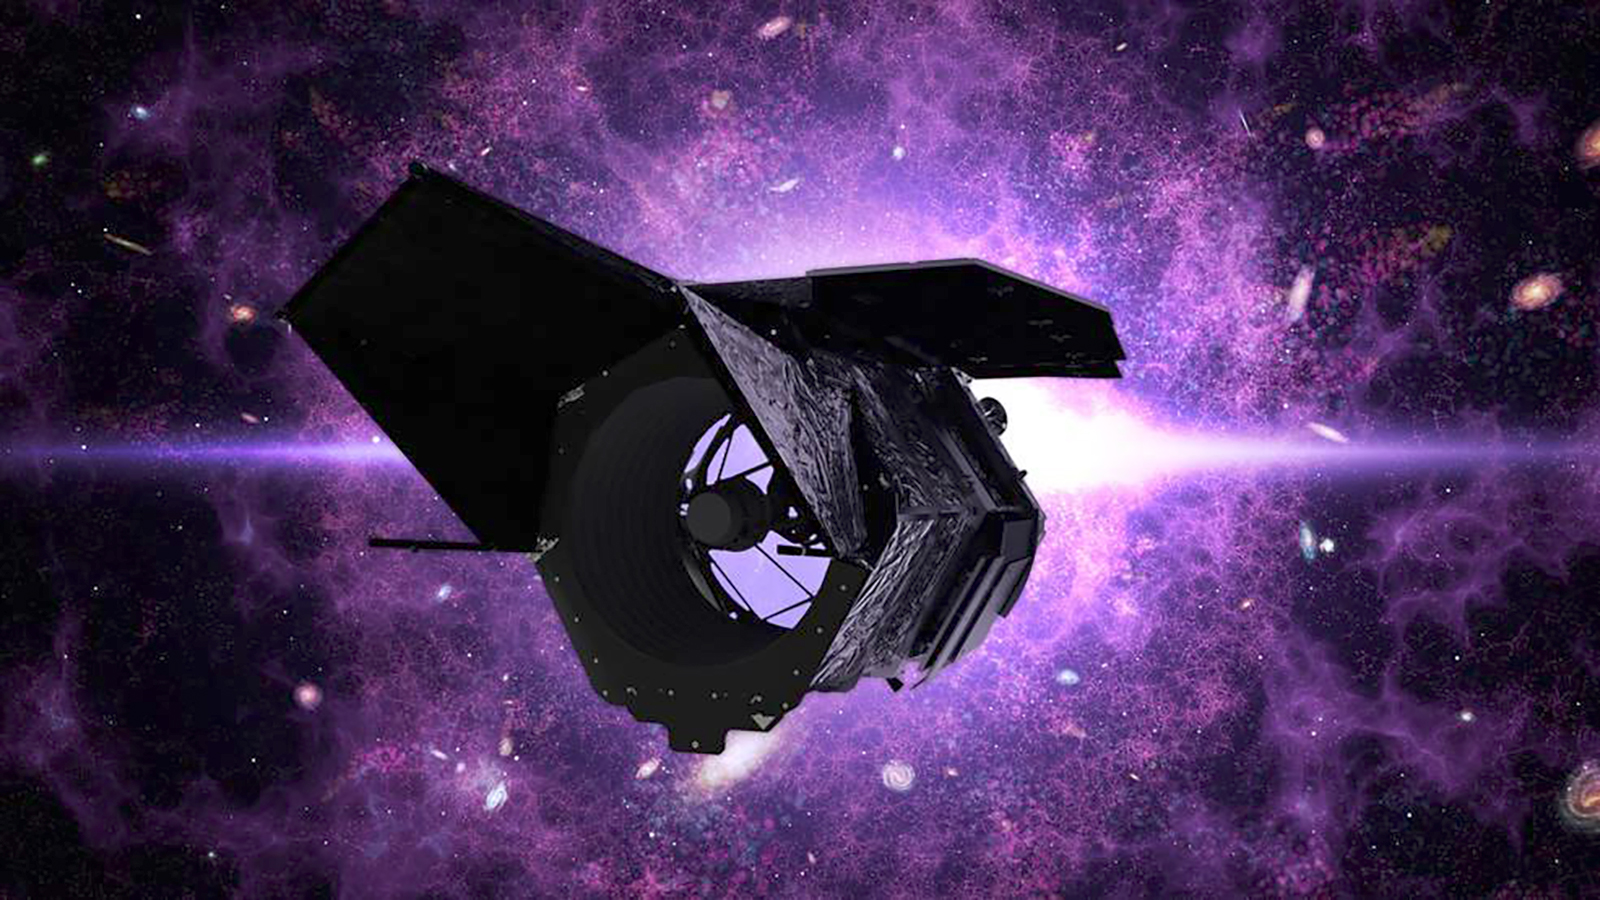 Invisible rogue planets without stars? NASA's new space telescope could find hundreds of them